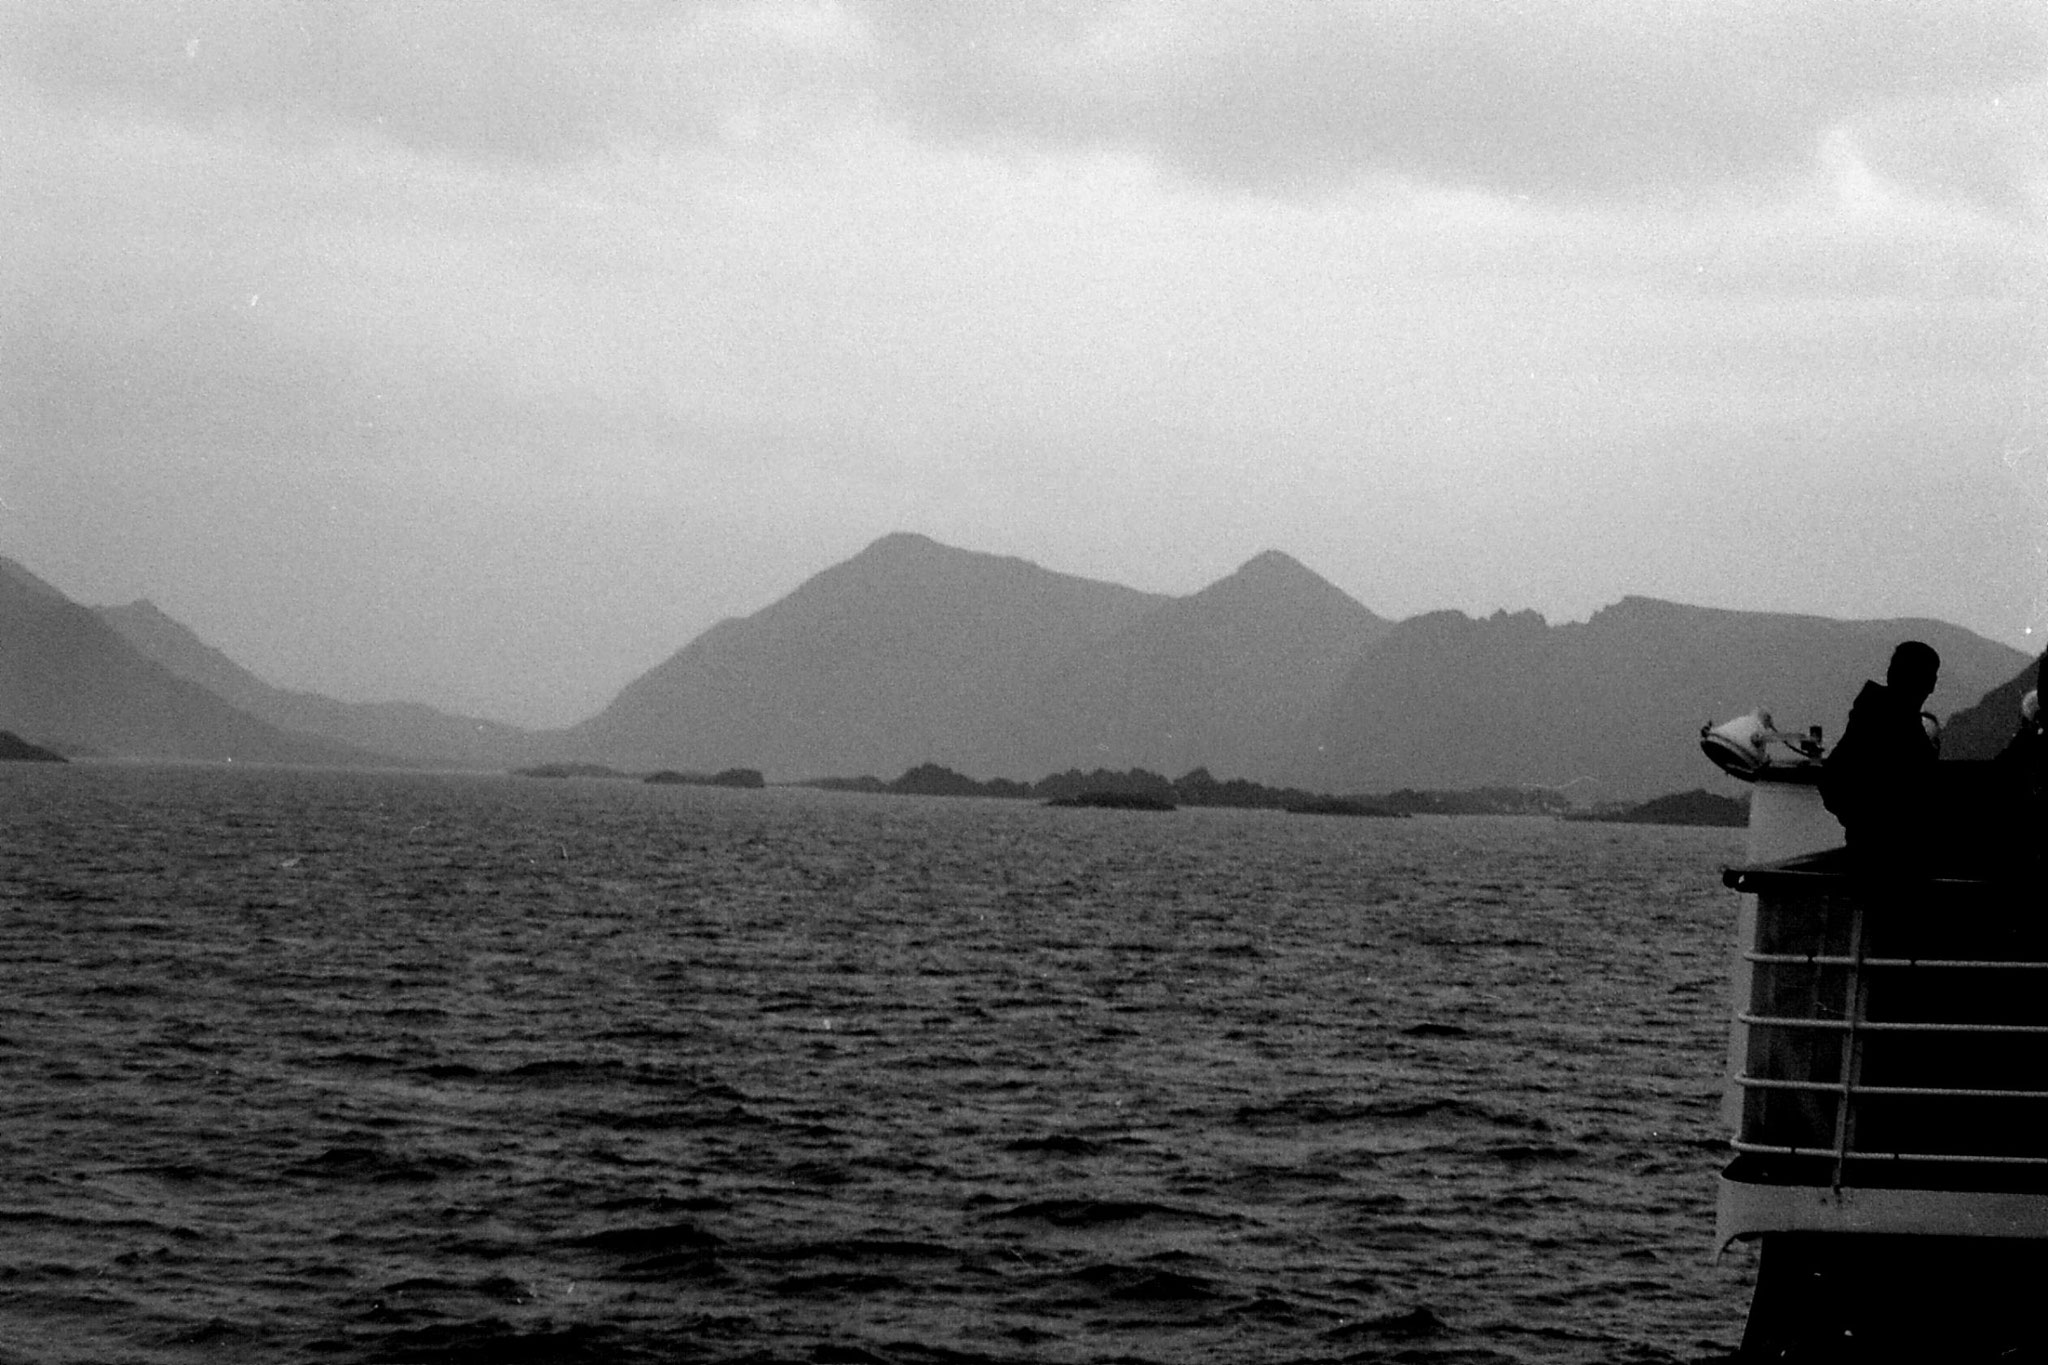 24/9/1988: 18: approaching Lofoten Is.